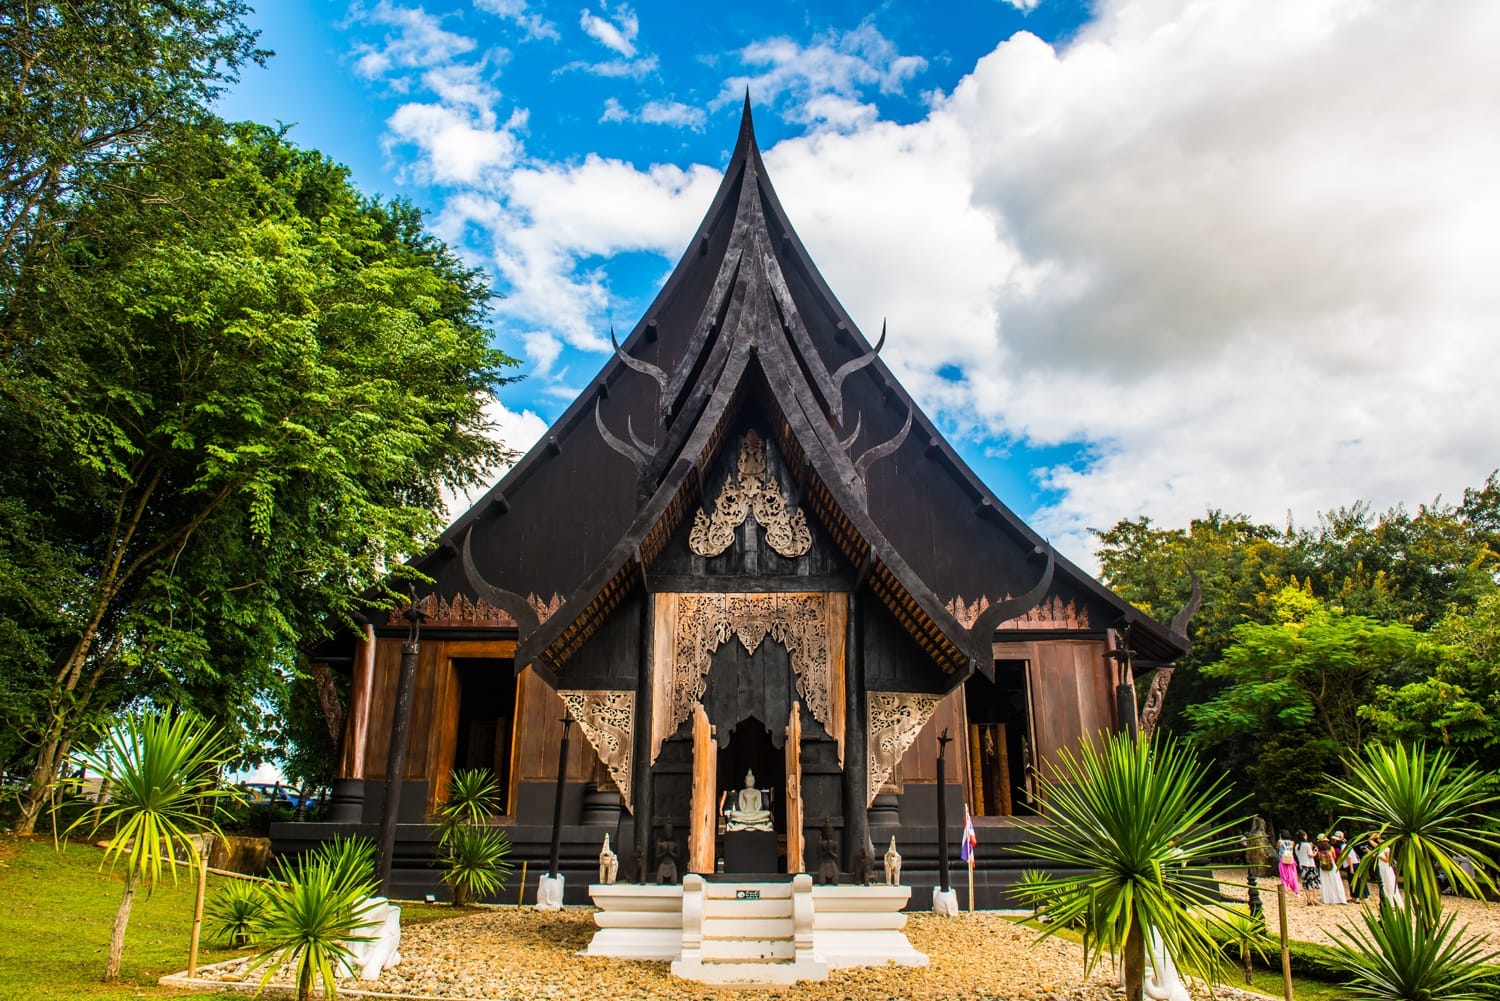 Black Cathedral at Baandam Museum, Thailand.